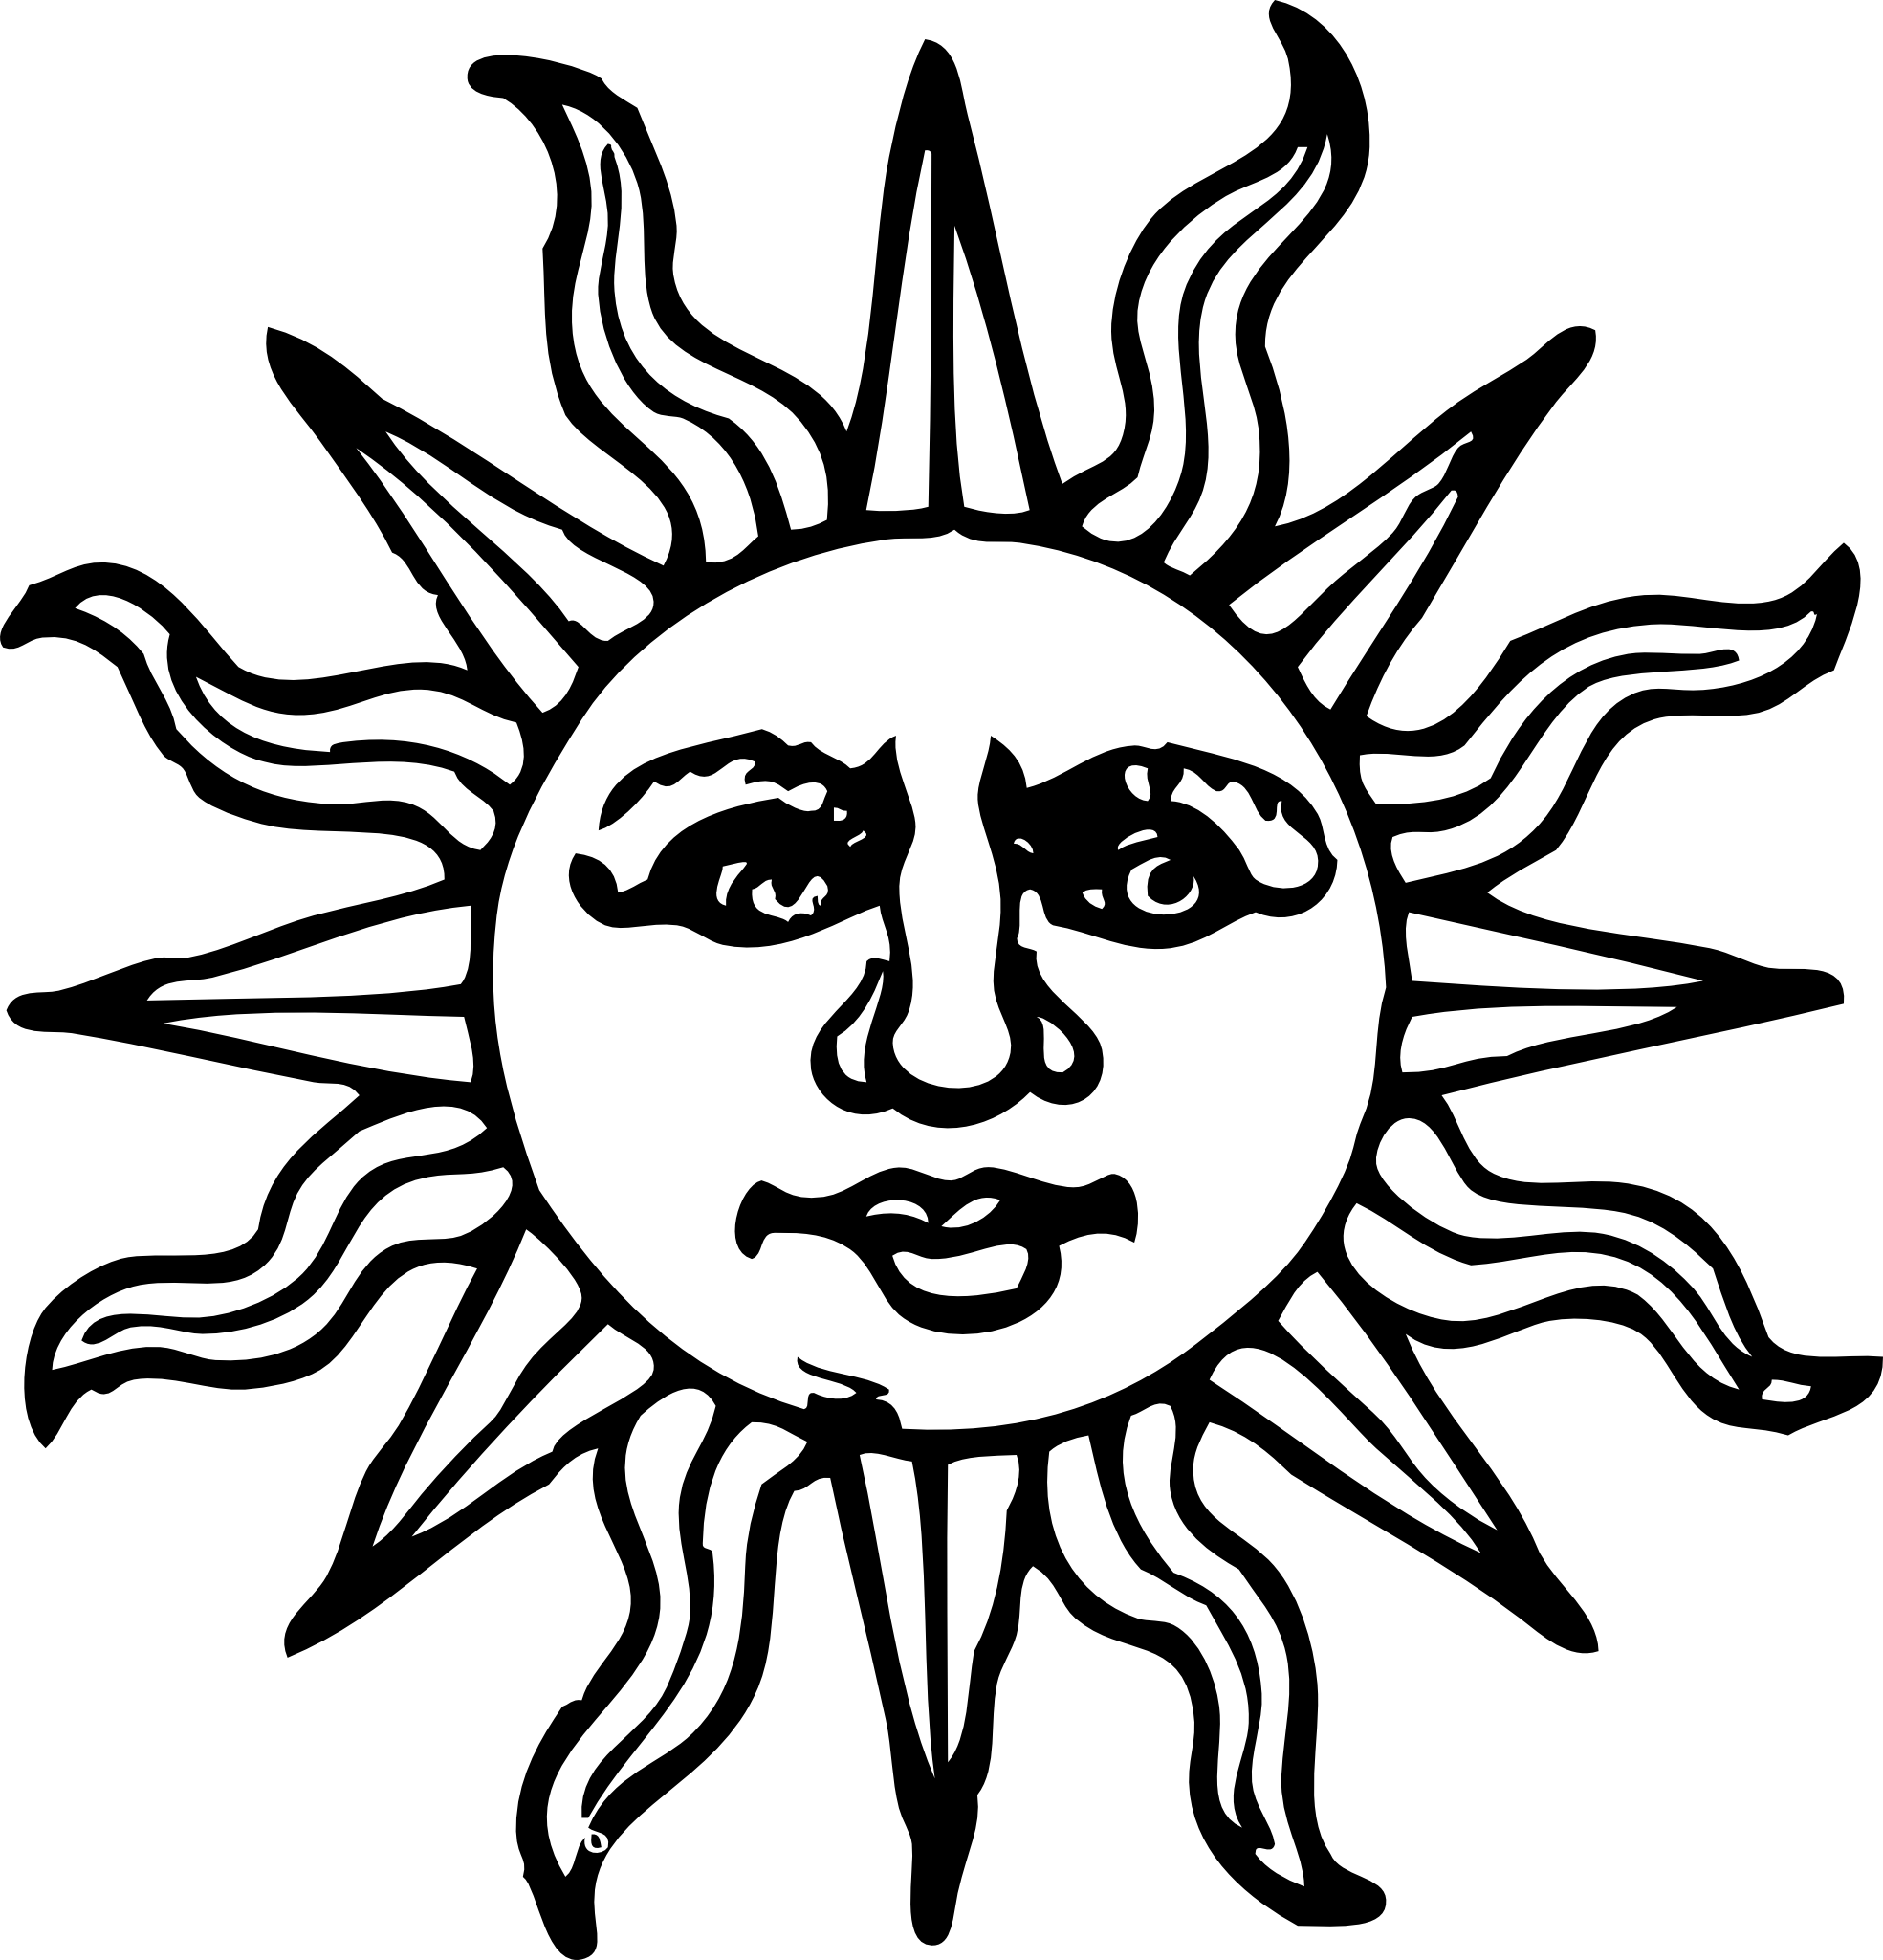 Sun  black and white happy sun clipart black and white free 2